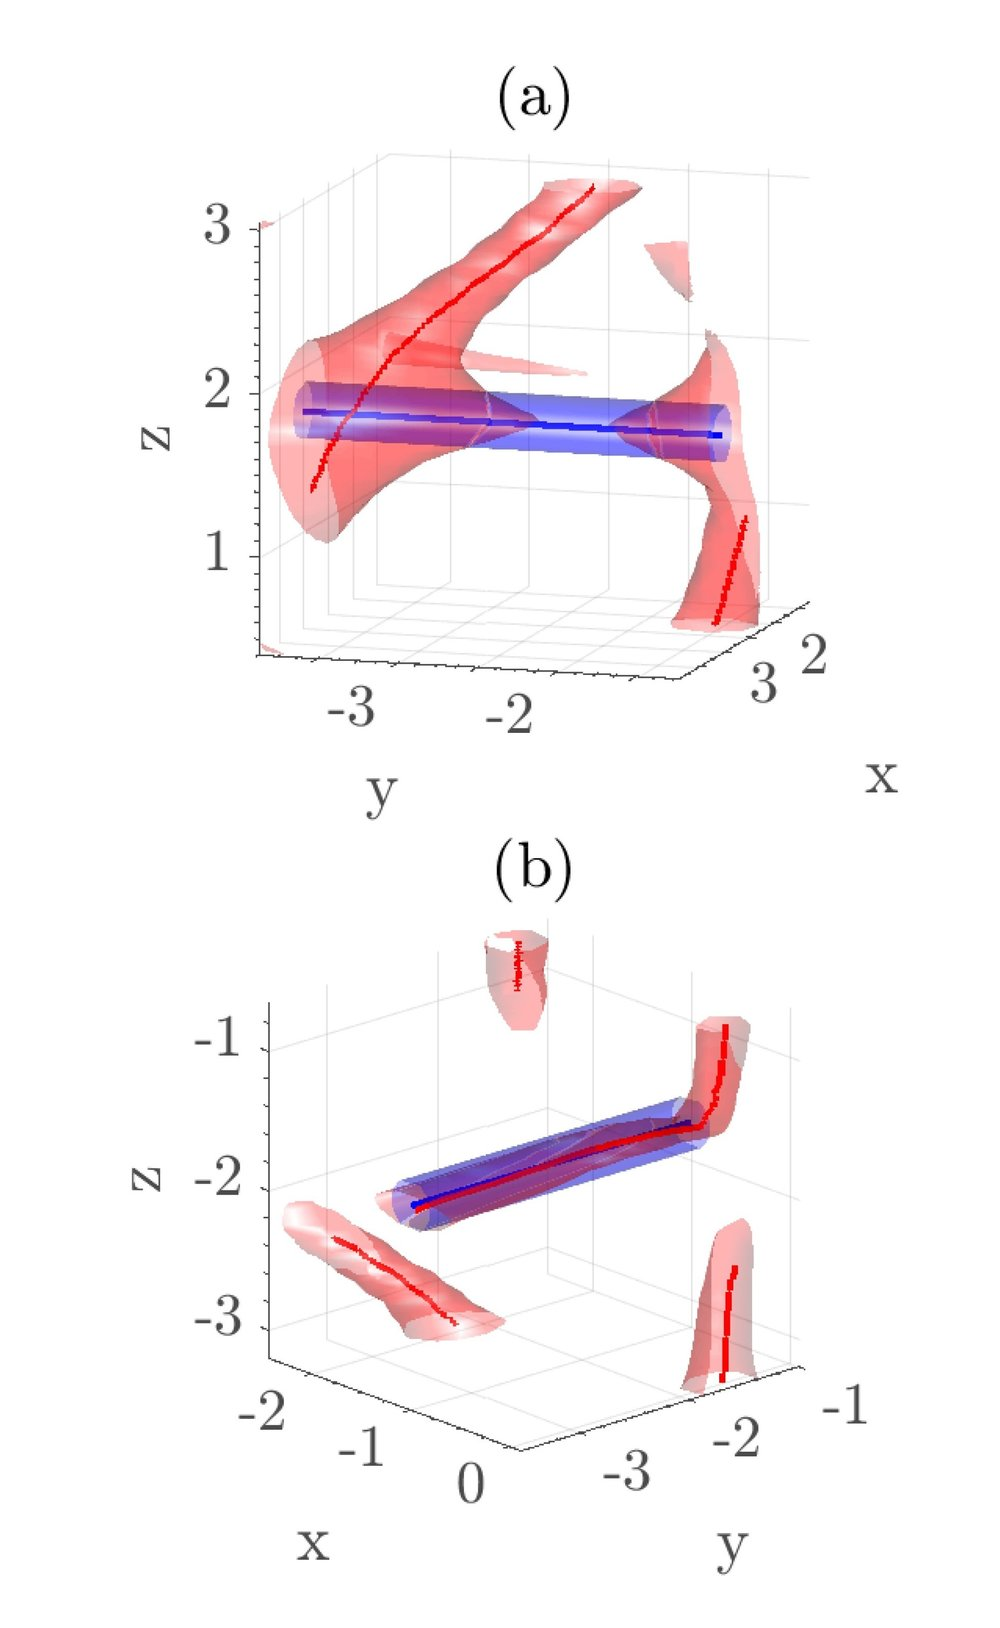 """Non-trivial geometry of neutron vortices pinned to the misaligned array of flux tubes in a neutron star arises naturally due to the """"frustration"""" of the system caused by the competing forces on the superfluid. The vortices do not crystallise into a rectilinear array as they do when the rotation and magnetic axes are aligned. Instead, they settle into a complex, partially polarised, interlocked pattern, called a """"vortex crystal"""";. This figure depicts the deformation and pinning of vortices (shaded in red) in a vortex crystal due to interactions with flux tubes (shaded in blue) which are tilted 90° with respect to the rotation axis. (a) Close-up snapshot of """"vortex spike"""". (b) A pinned vortex.    (Drummond L. V., Melatos A., 2018, Monthly Notices of the Royal Astronomical Society, 475, 910)."""